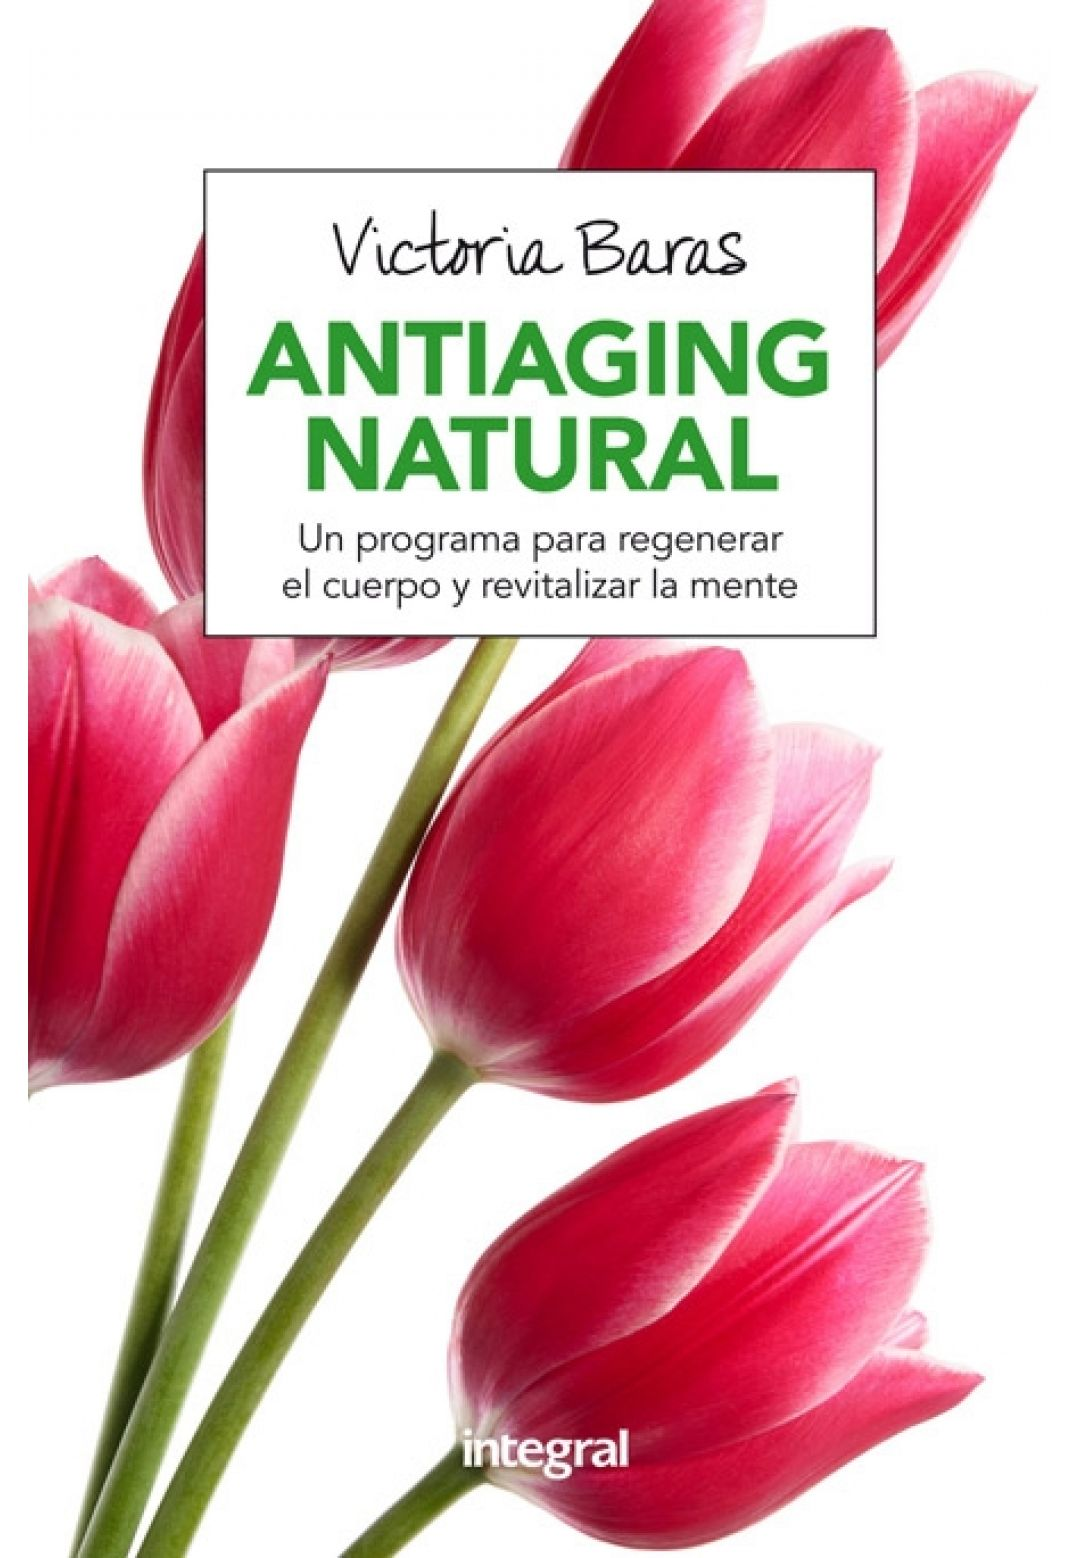 Antiaging natural - Baras Victoria